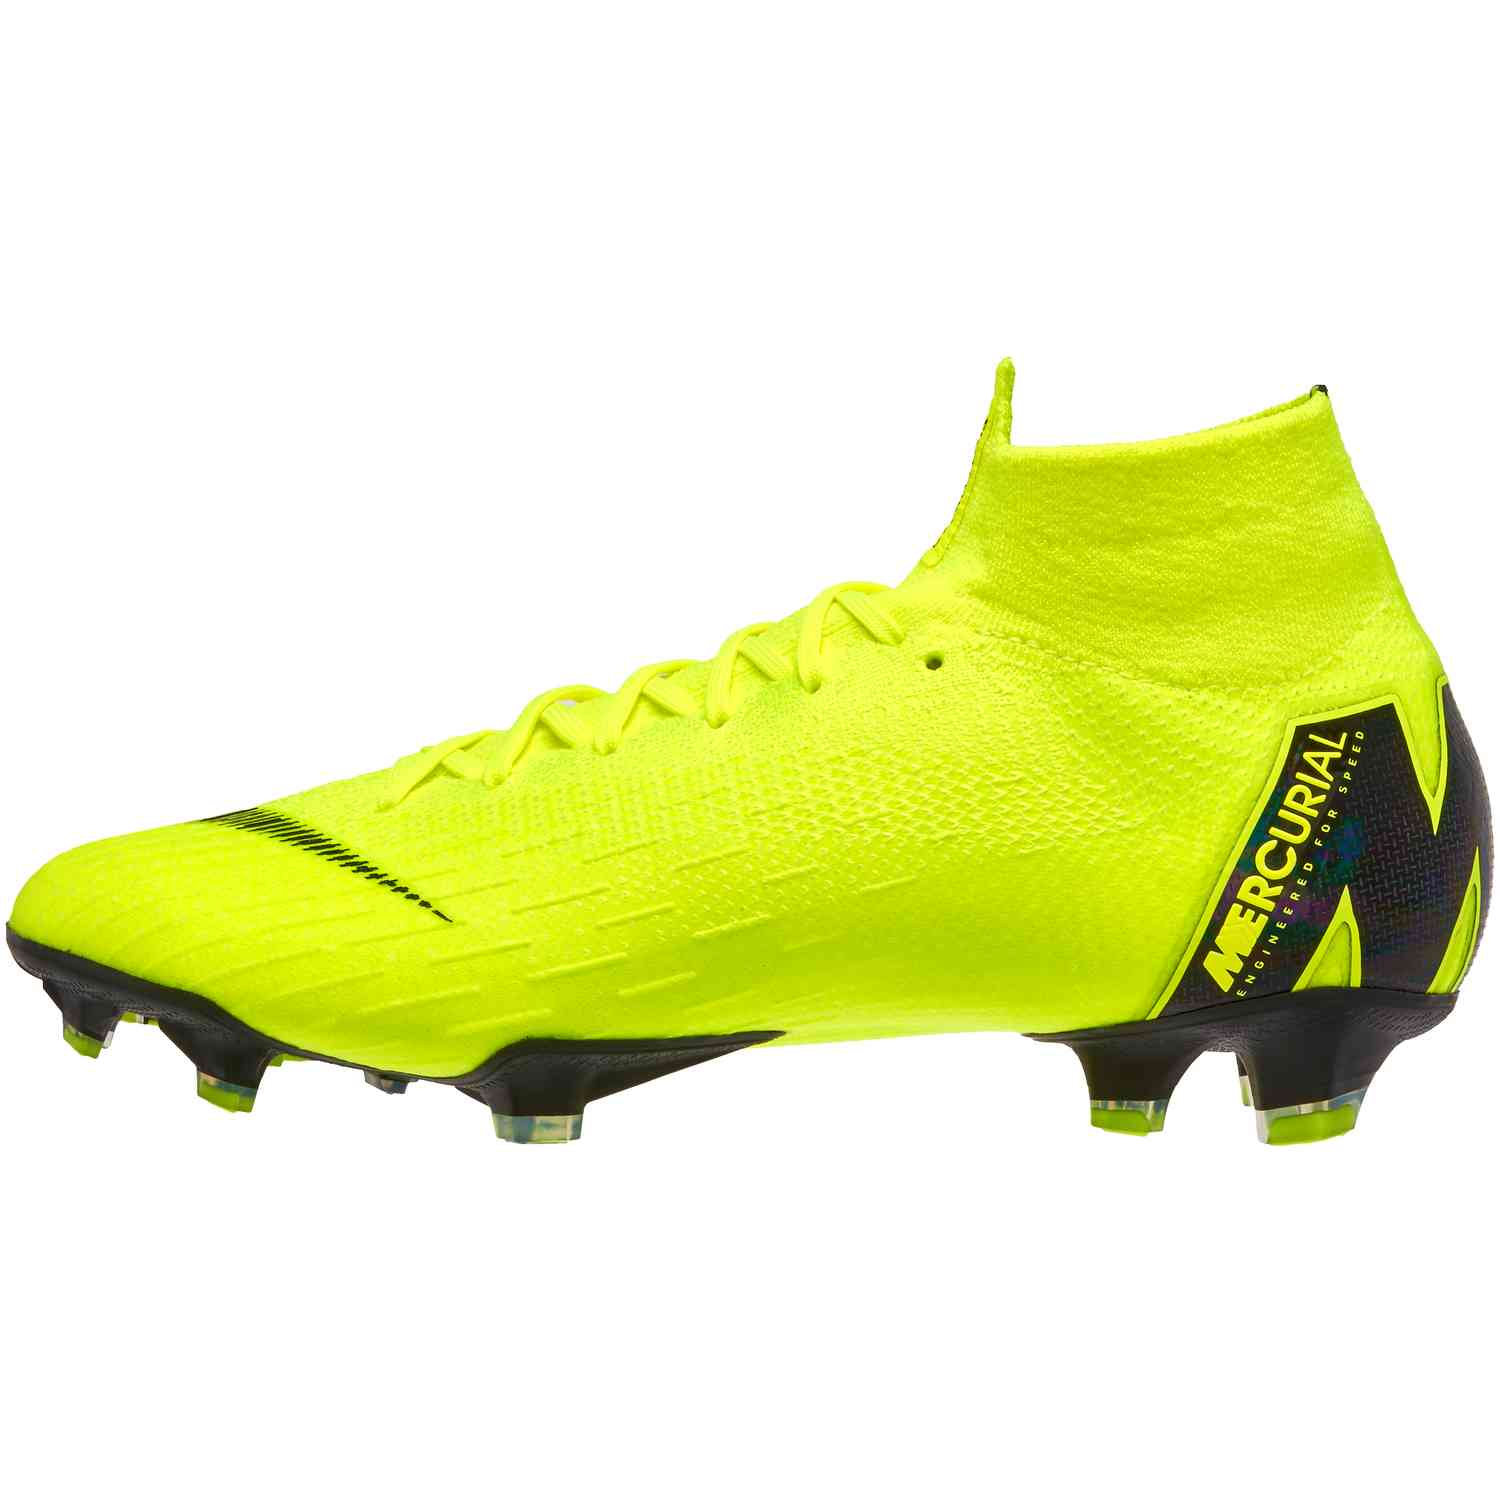 db4807f6181 Nike Mercurial Superfly 6 Elite FG - Volt/Black - Soccer Master